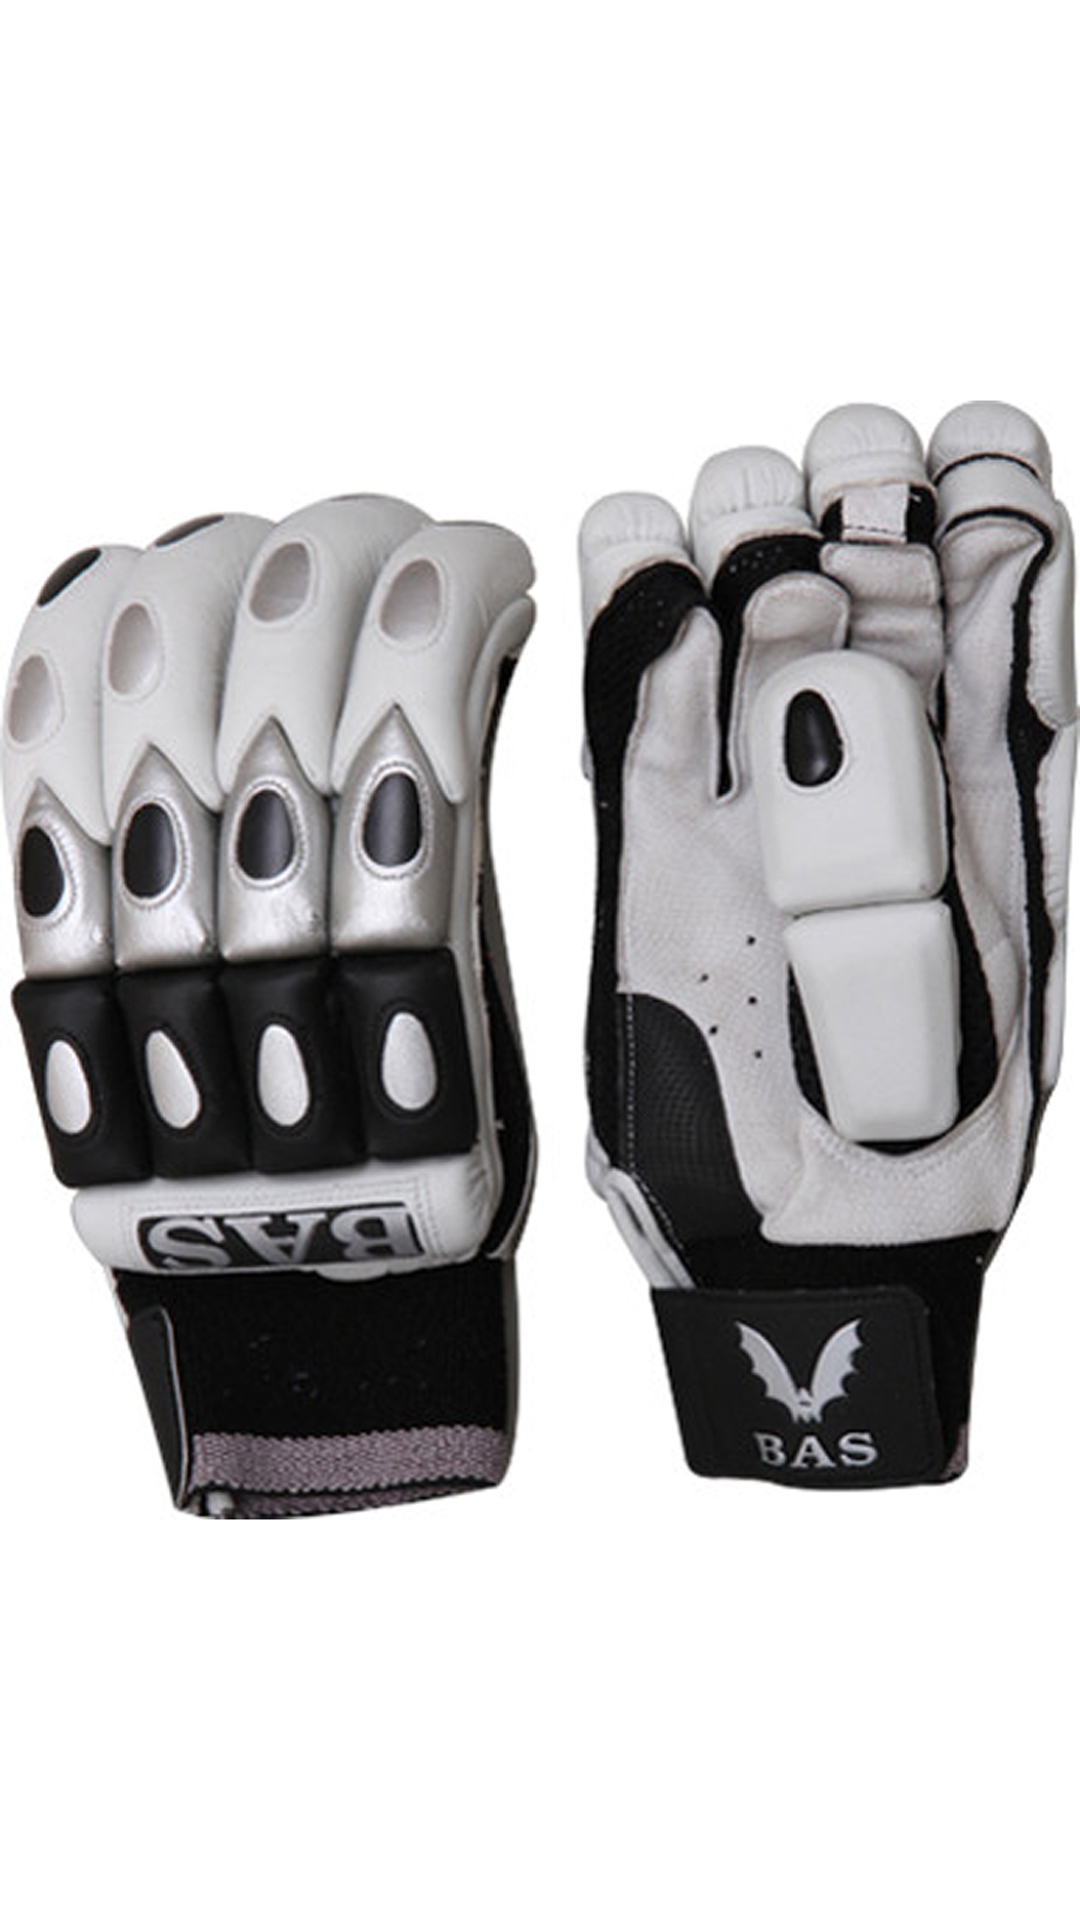 BAS Vampire Bg56 Batting Glove-Black And White (Size-L)